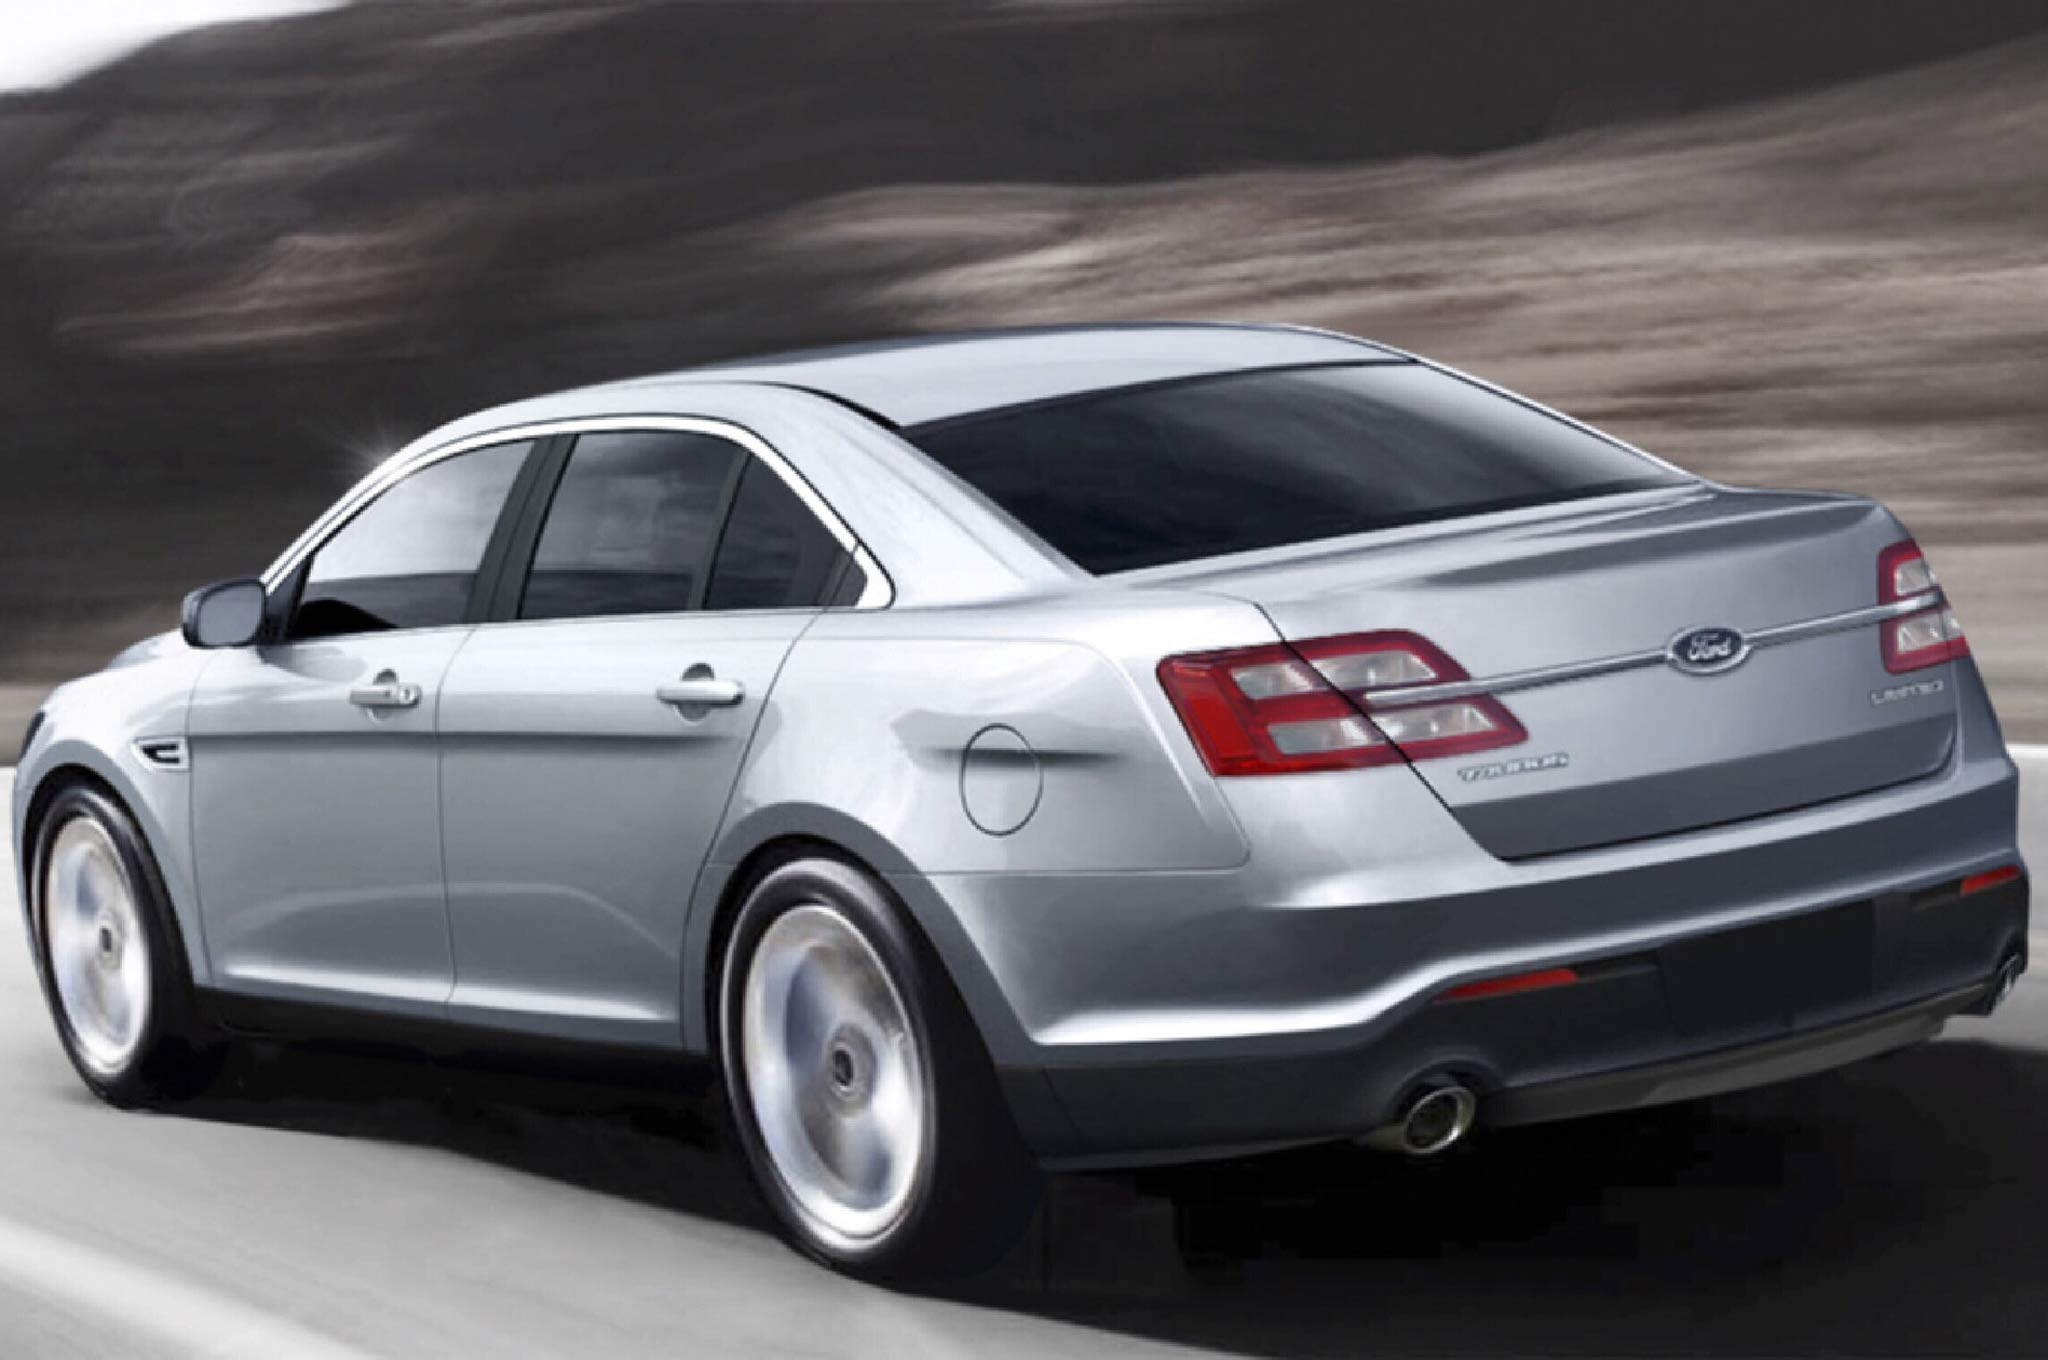 2013 ford taurus sho editors 39 notebook specs. Black Bedroom Furniture Sets. Home Design Ideas